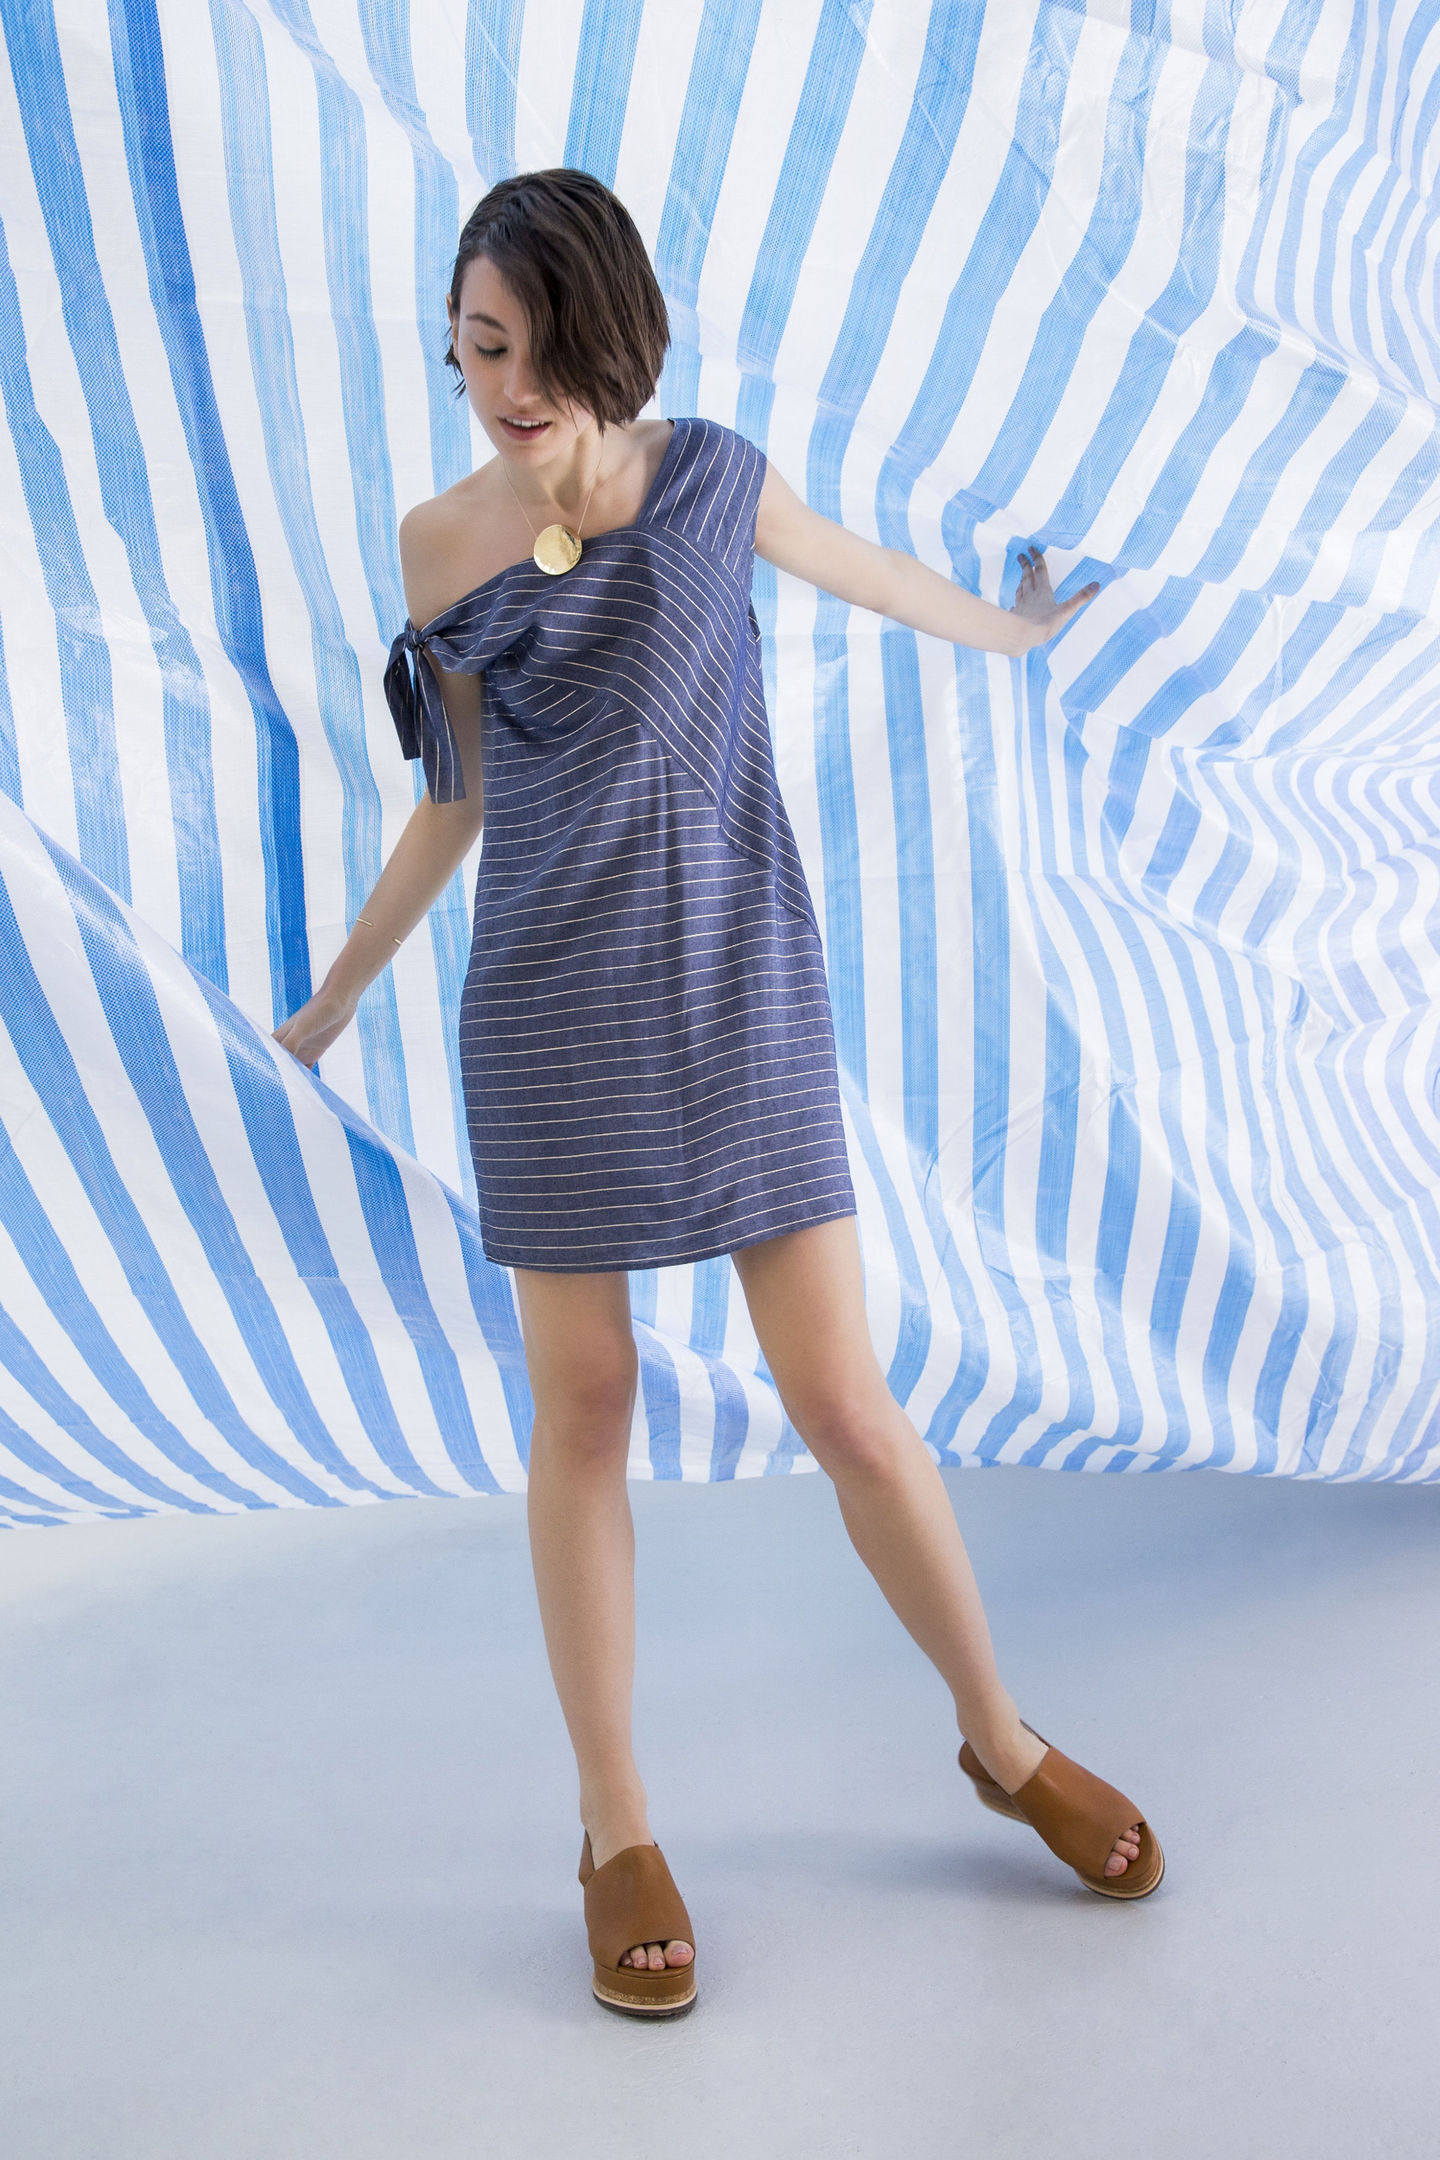 Undated Handout Photo of a model wearing the Oliver Bonas Absorb Asymmetric Stripe Dress, available from oliverbonas.com. See PA Feature FASHION Stripes. Picture credit should read: PA Photo/Handout. WARNING: This picture must only be used to accompany PA Feature FASHION Stripes. WARNING: This picture must only be used with the full product information as stated above.